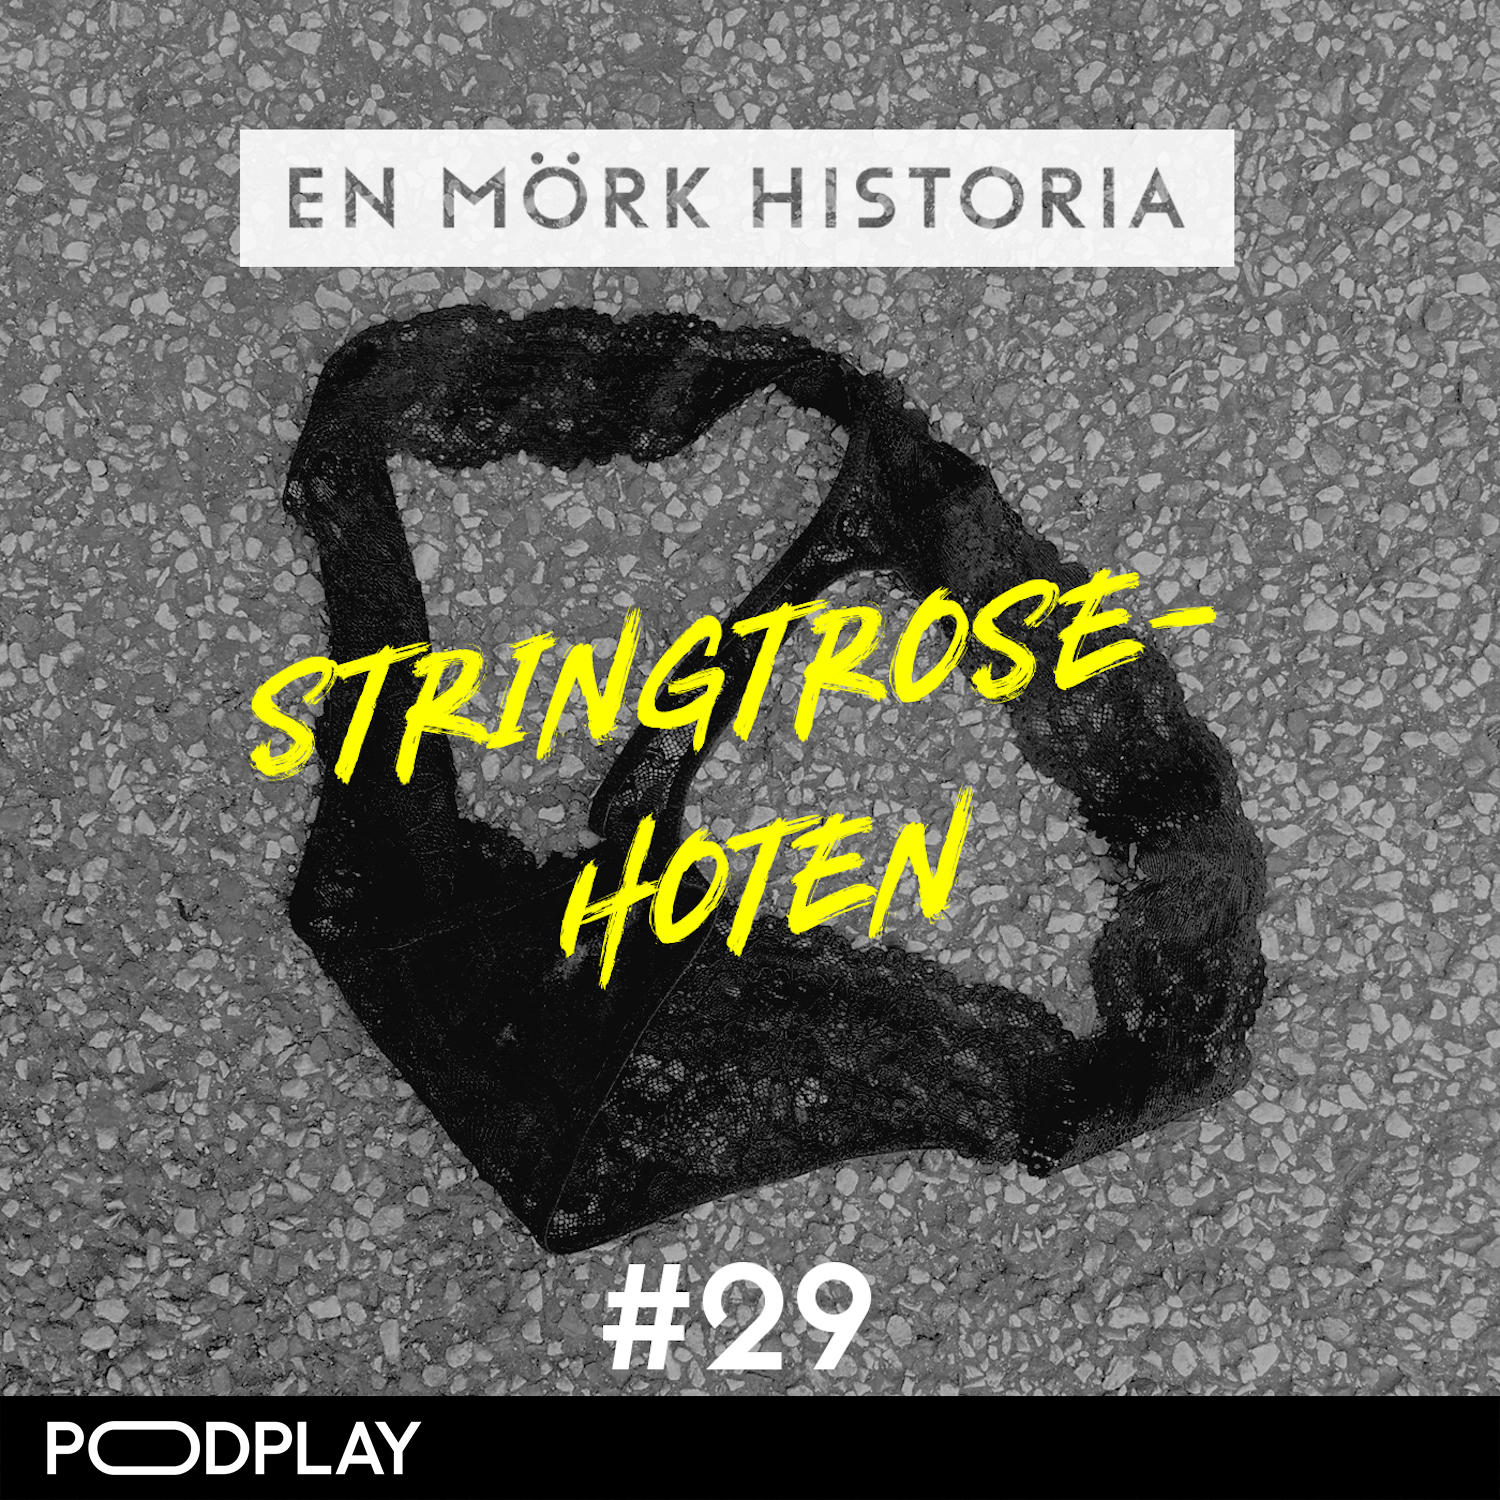 Trailer - Stringtrosehoten